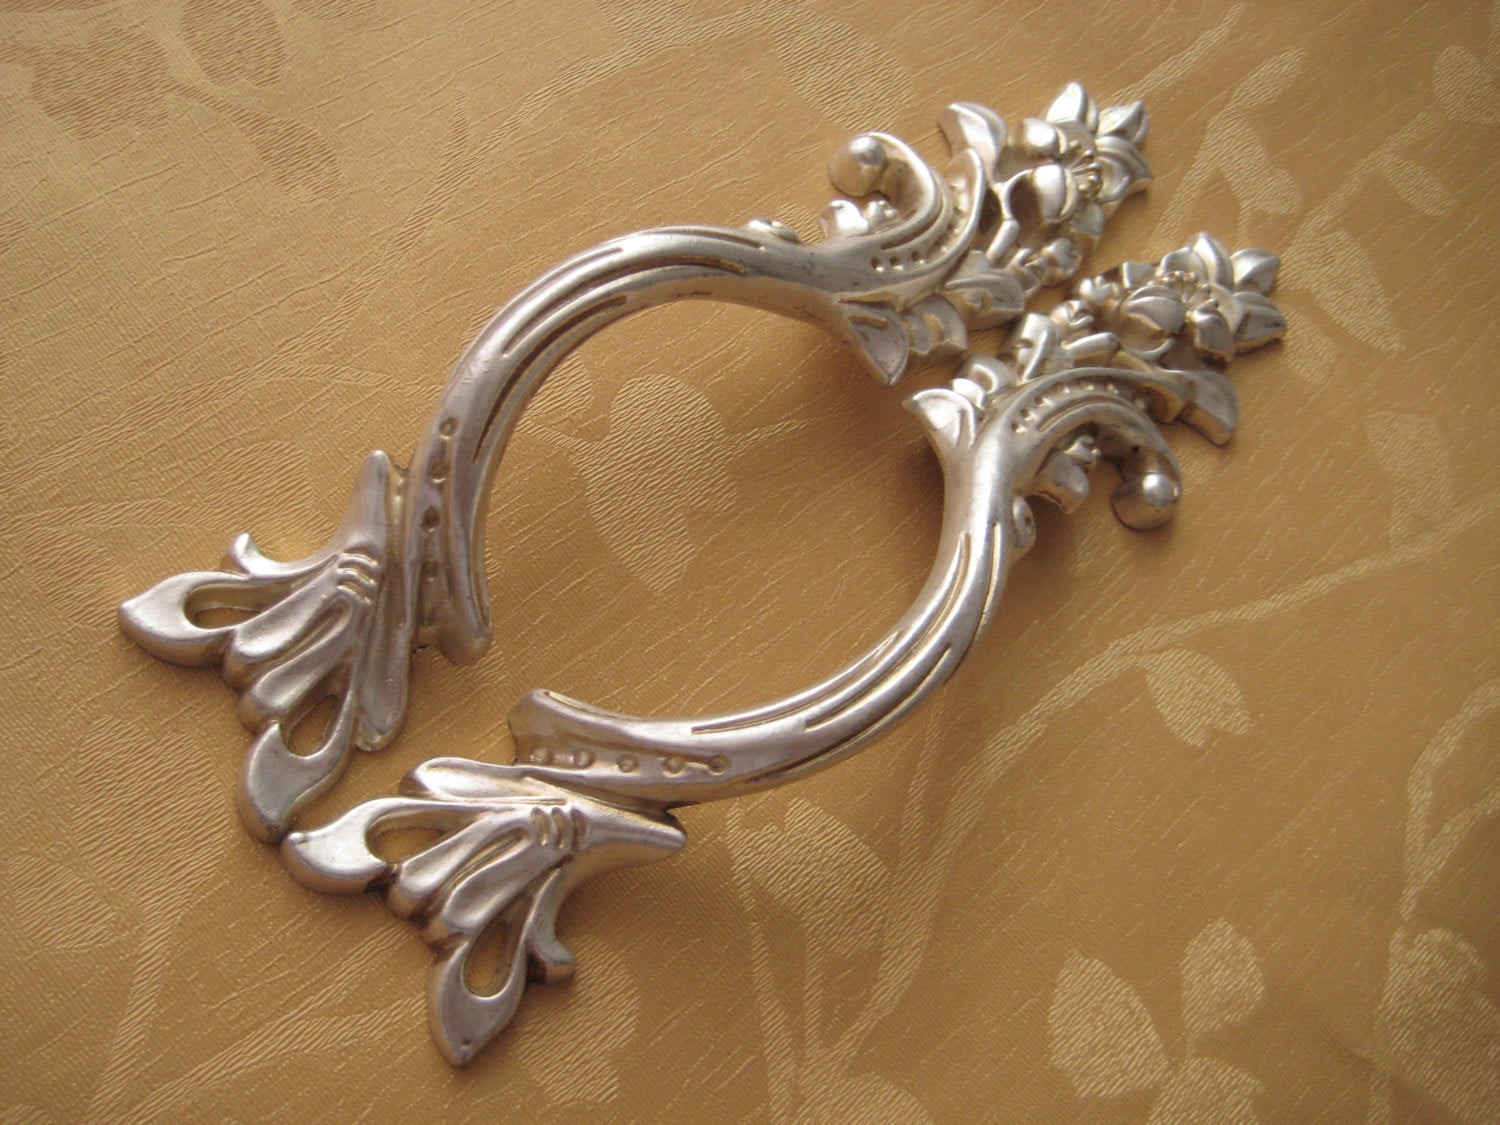 Best ideas about Shabby Chic Drawer Pull . Save or Pin Shabby Chic Dresser Pulls Drawer Pull Handles Bail Pulls Now.